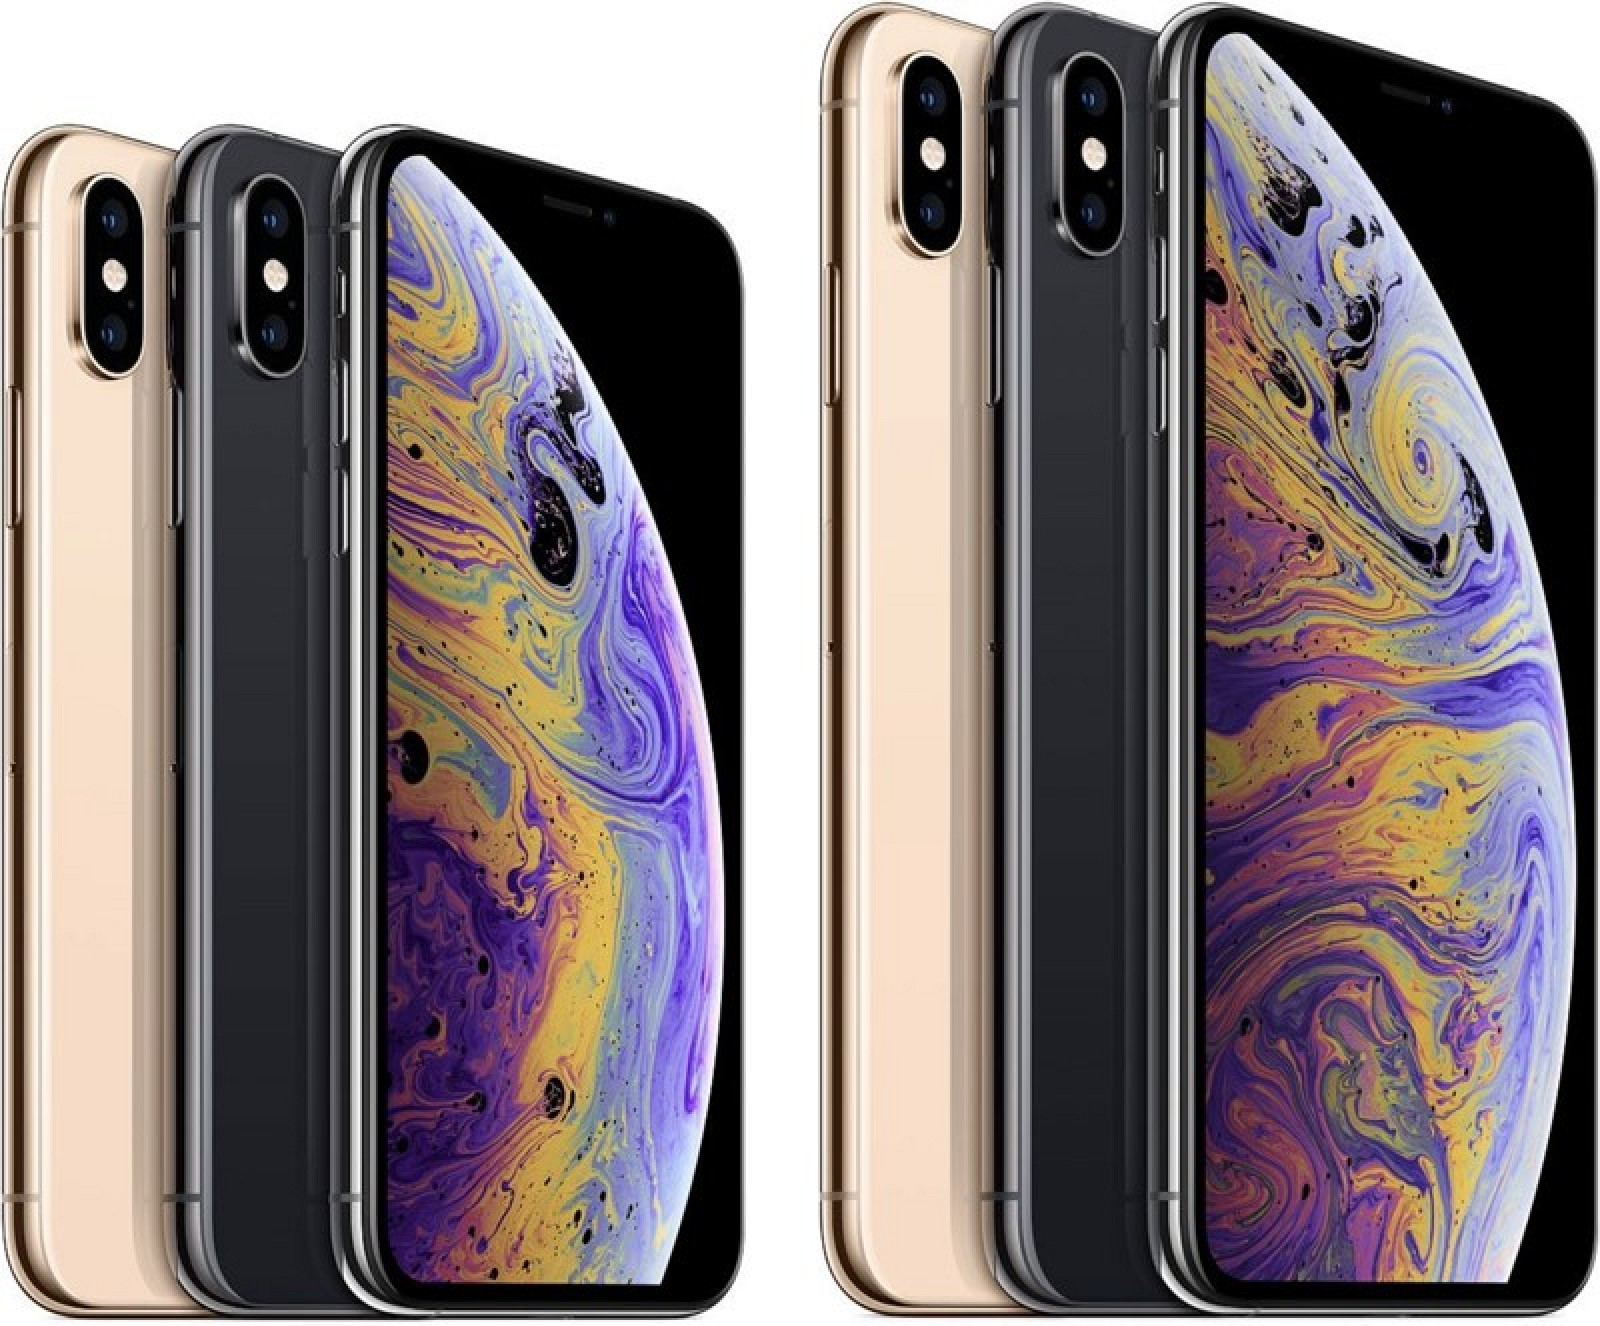 new styles 5eda2 1d0c9 iPhone XS and XS Max Feature Upgraded IP68 Water and Dust Resistance ...